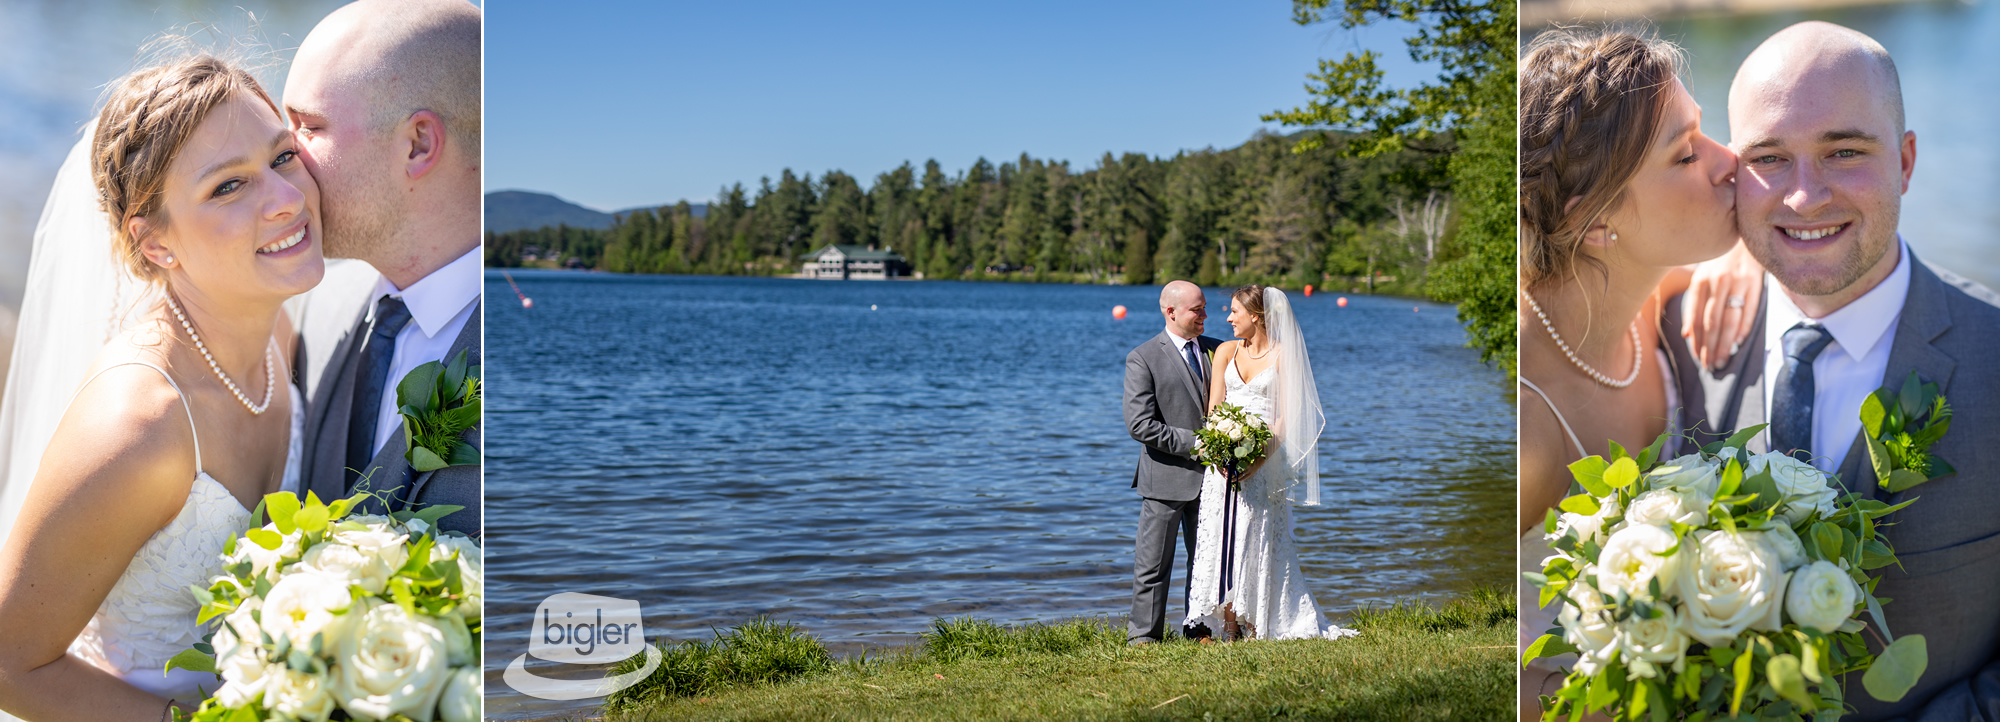 20180616_-_23_-_Lake_Placid_Wedding